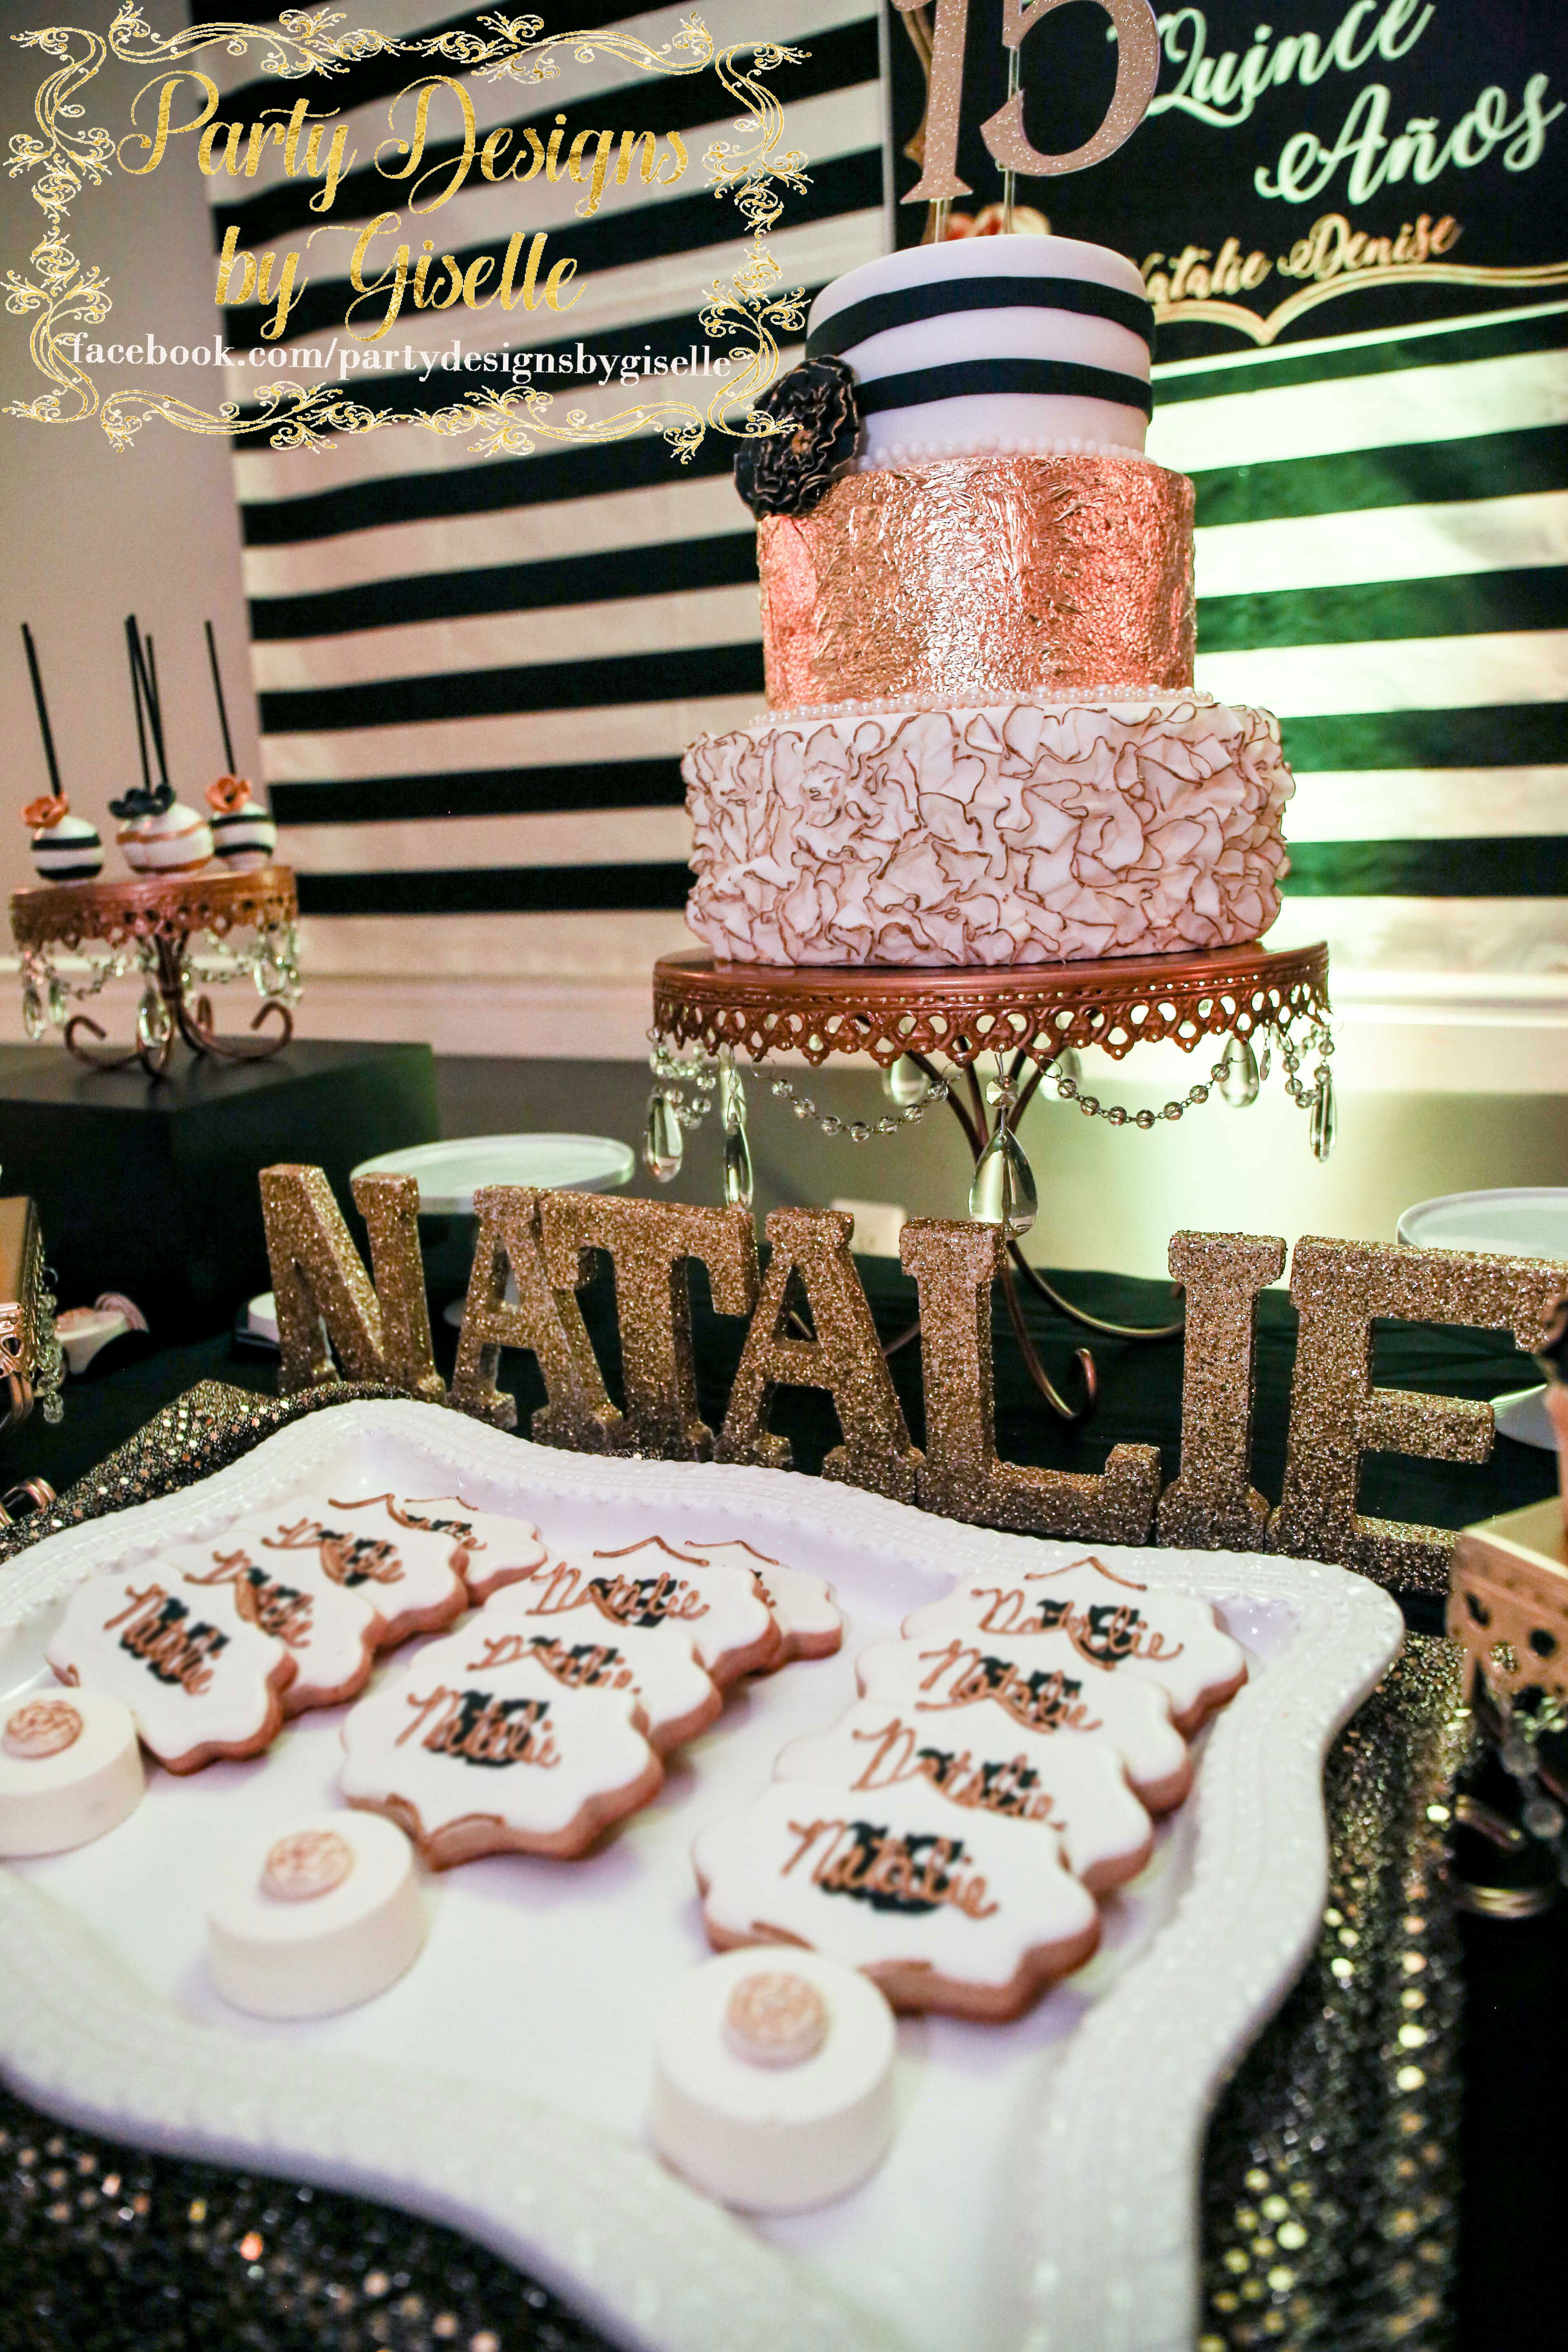 Black And White Stripes With Gold Roses Quinceanera Dessert Table